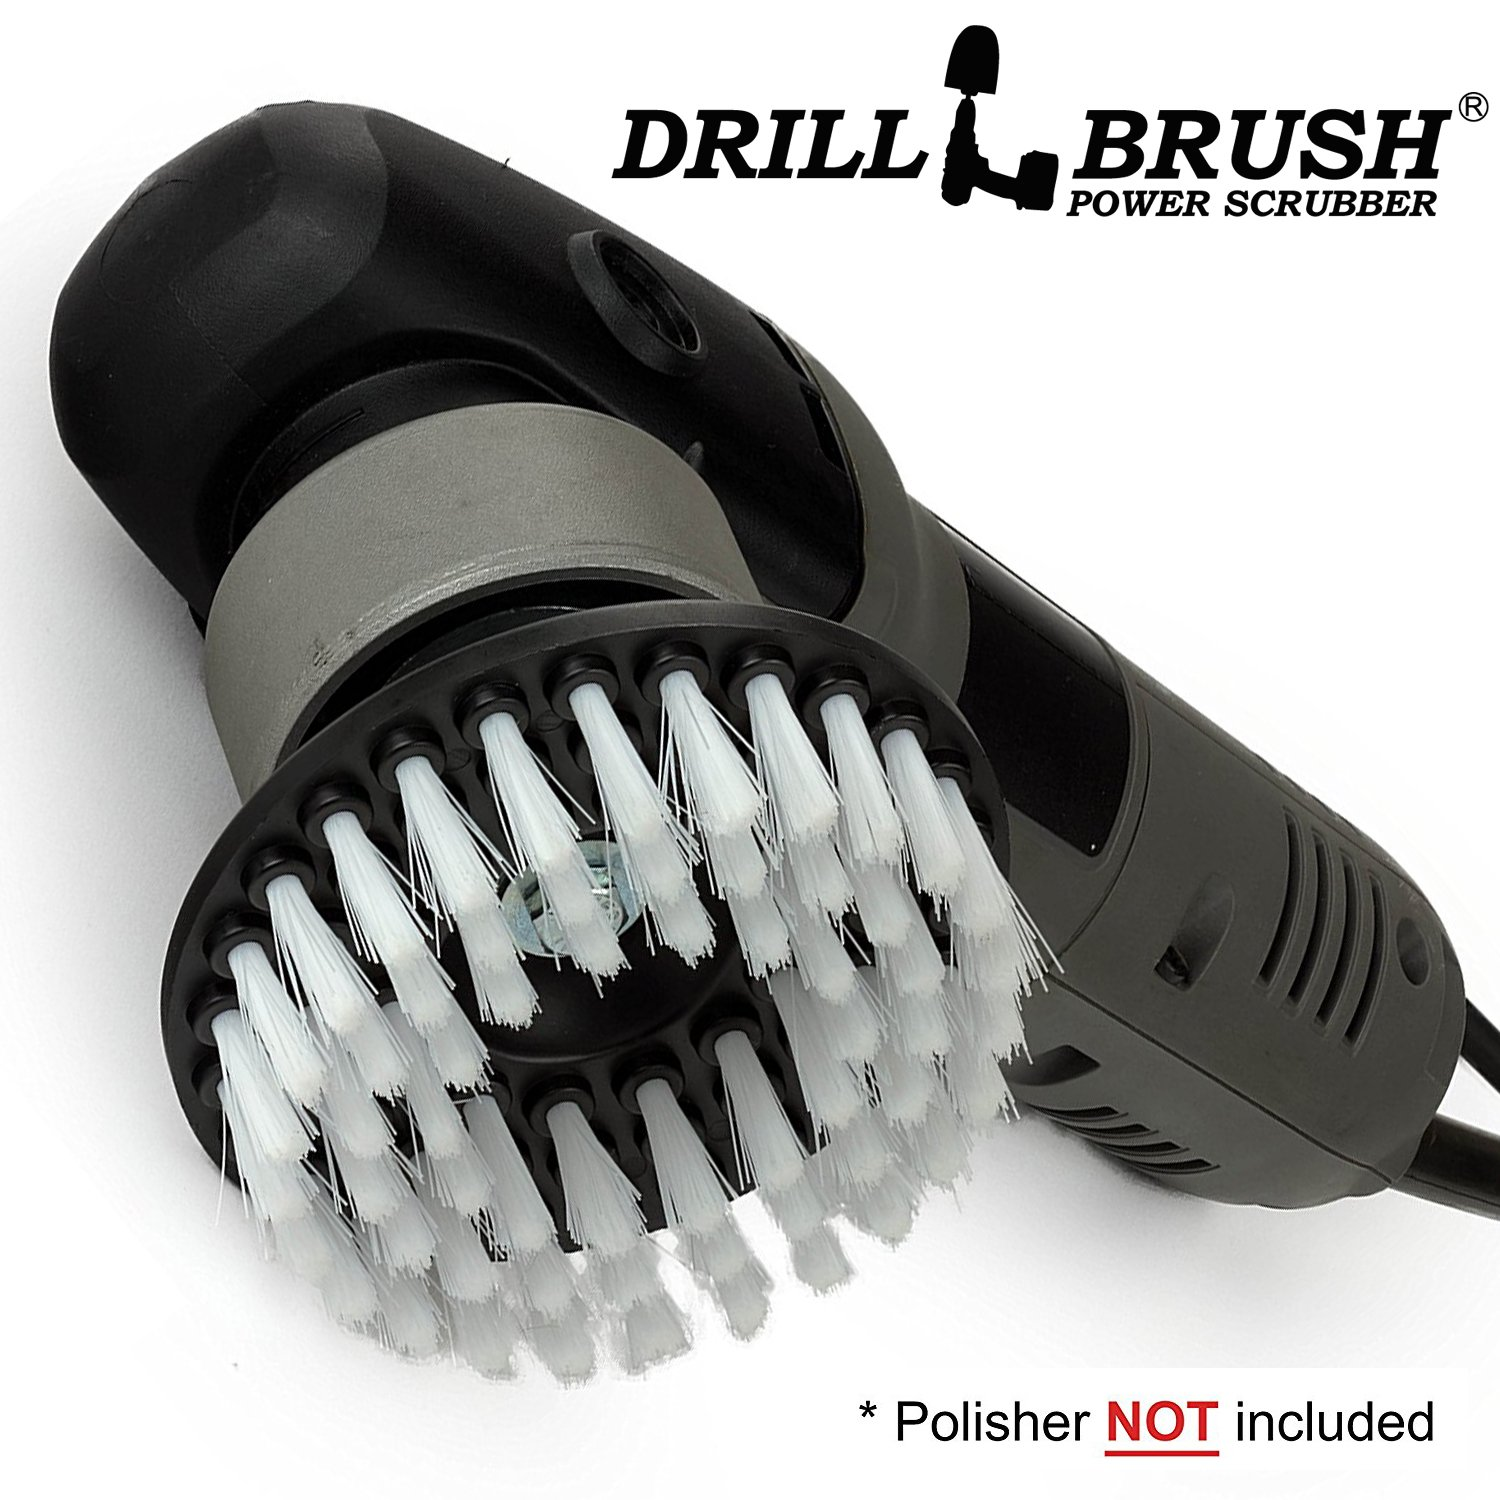 Polisher - Scrub Brush - Carpet Cleaner - Rug - DA - Buffer Polisher - Soft White Bristles with Threaded Shaft - fits - Dual Action - Rotary - Positive Drive Polishers - Glass Cleaner - Carpet Brush